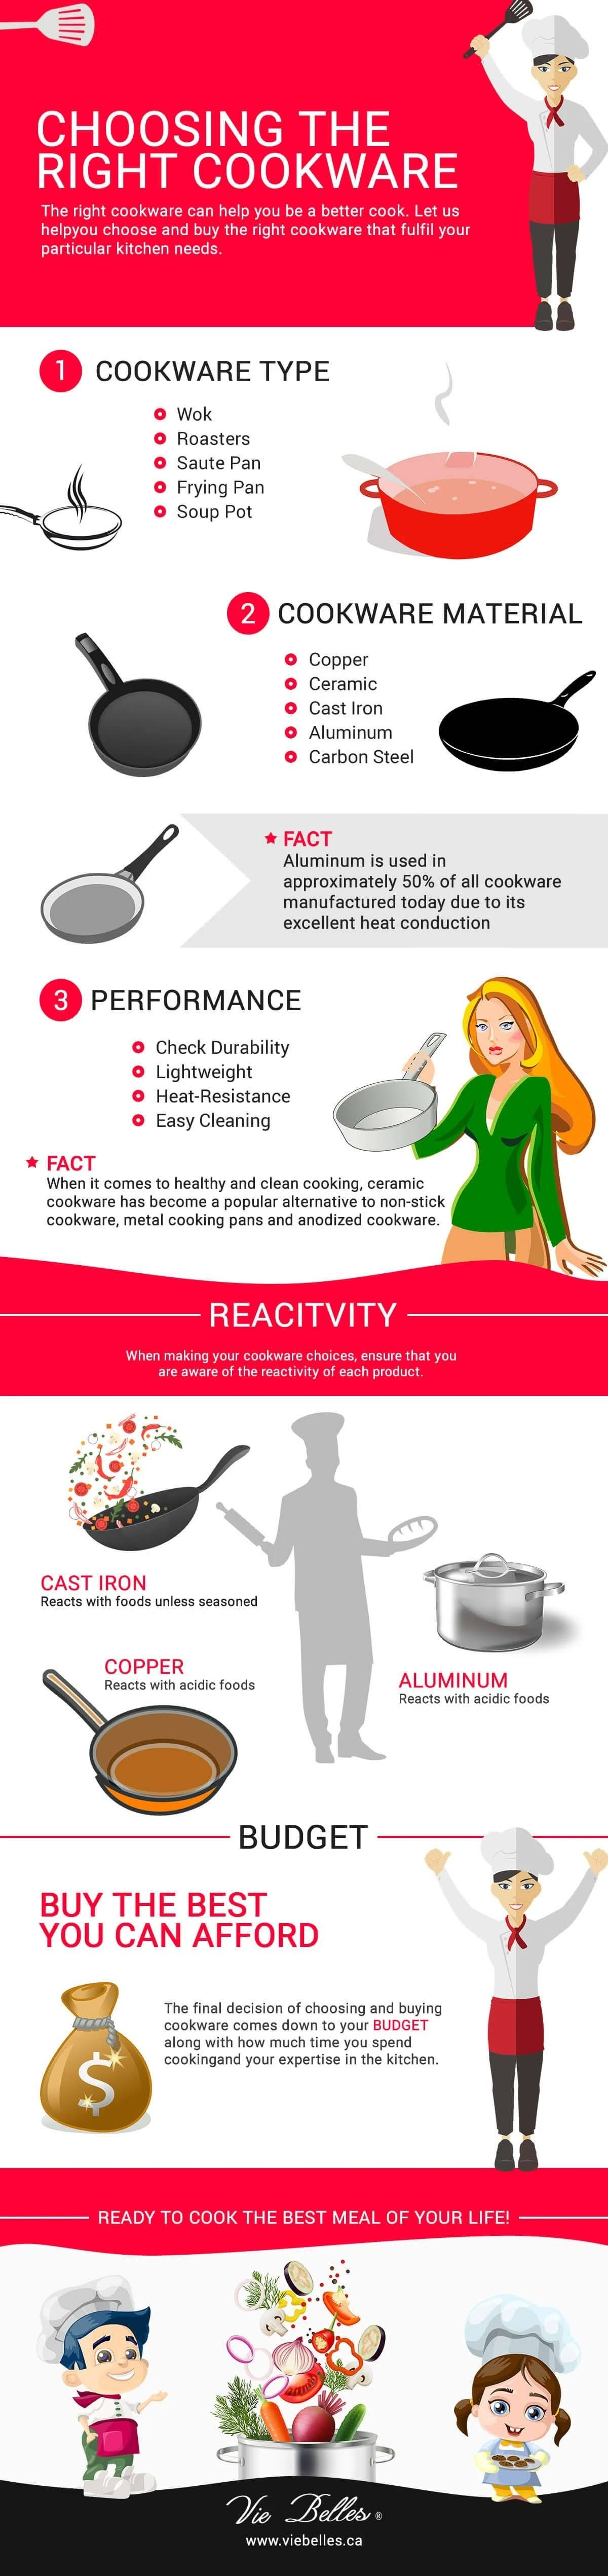 Choosing the Right Cookware #infographic